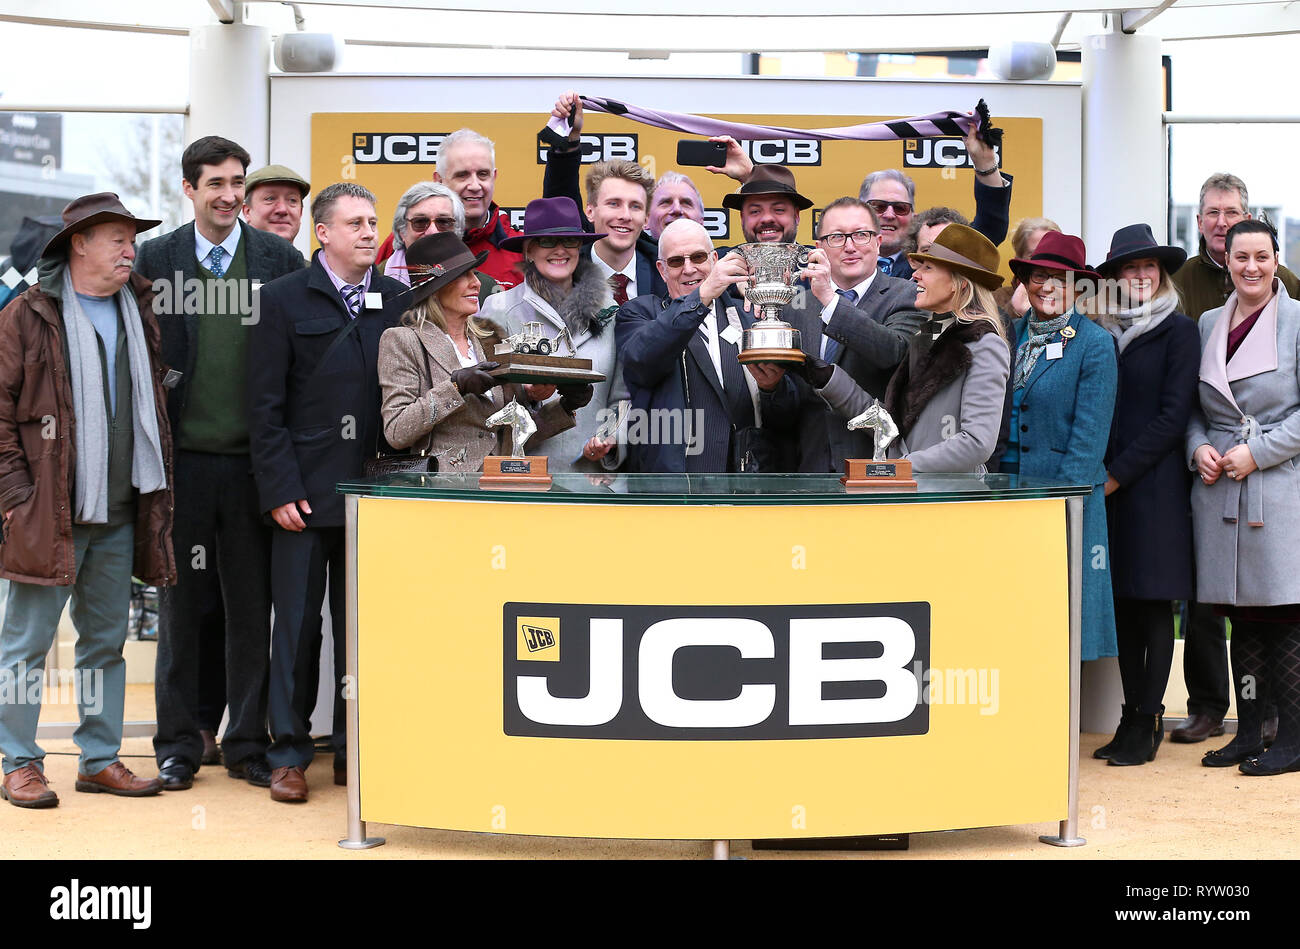 Victory Owners Group >> Owners Group 31 Celebrate Victory In The Jcp Triumph Hurdle